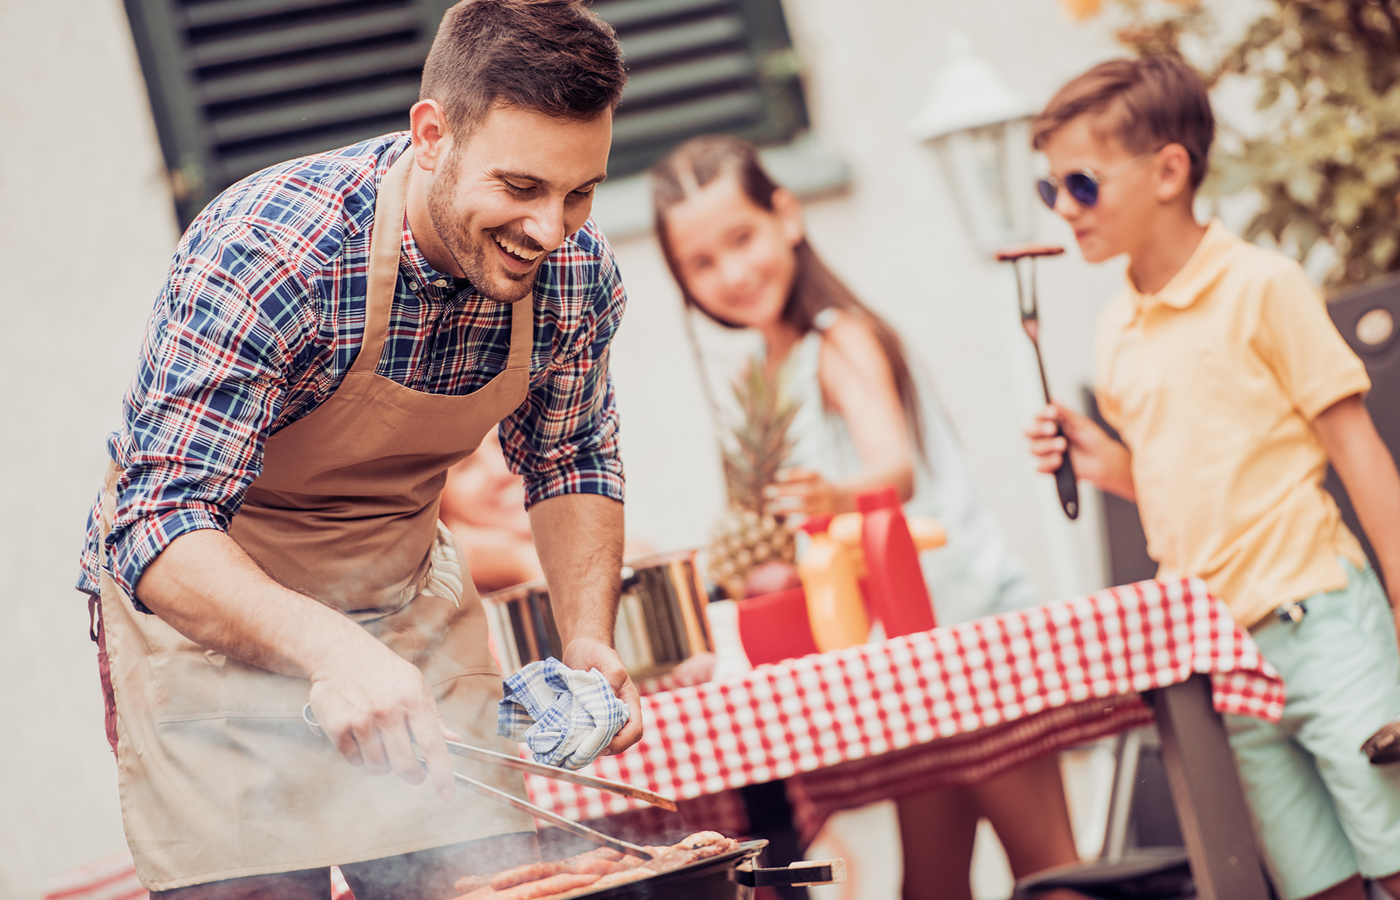 50 Fun Things to Do for Your Sensational Summer